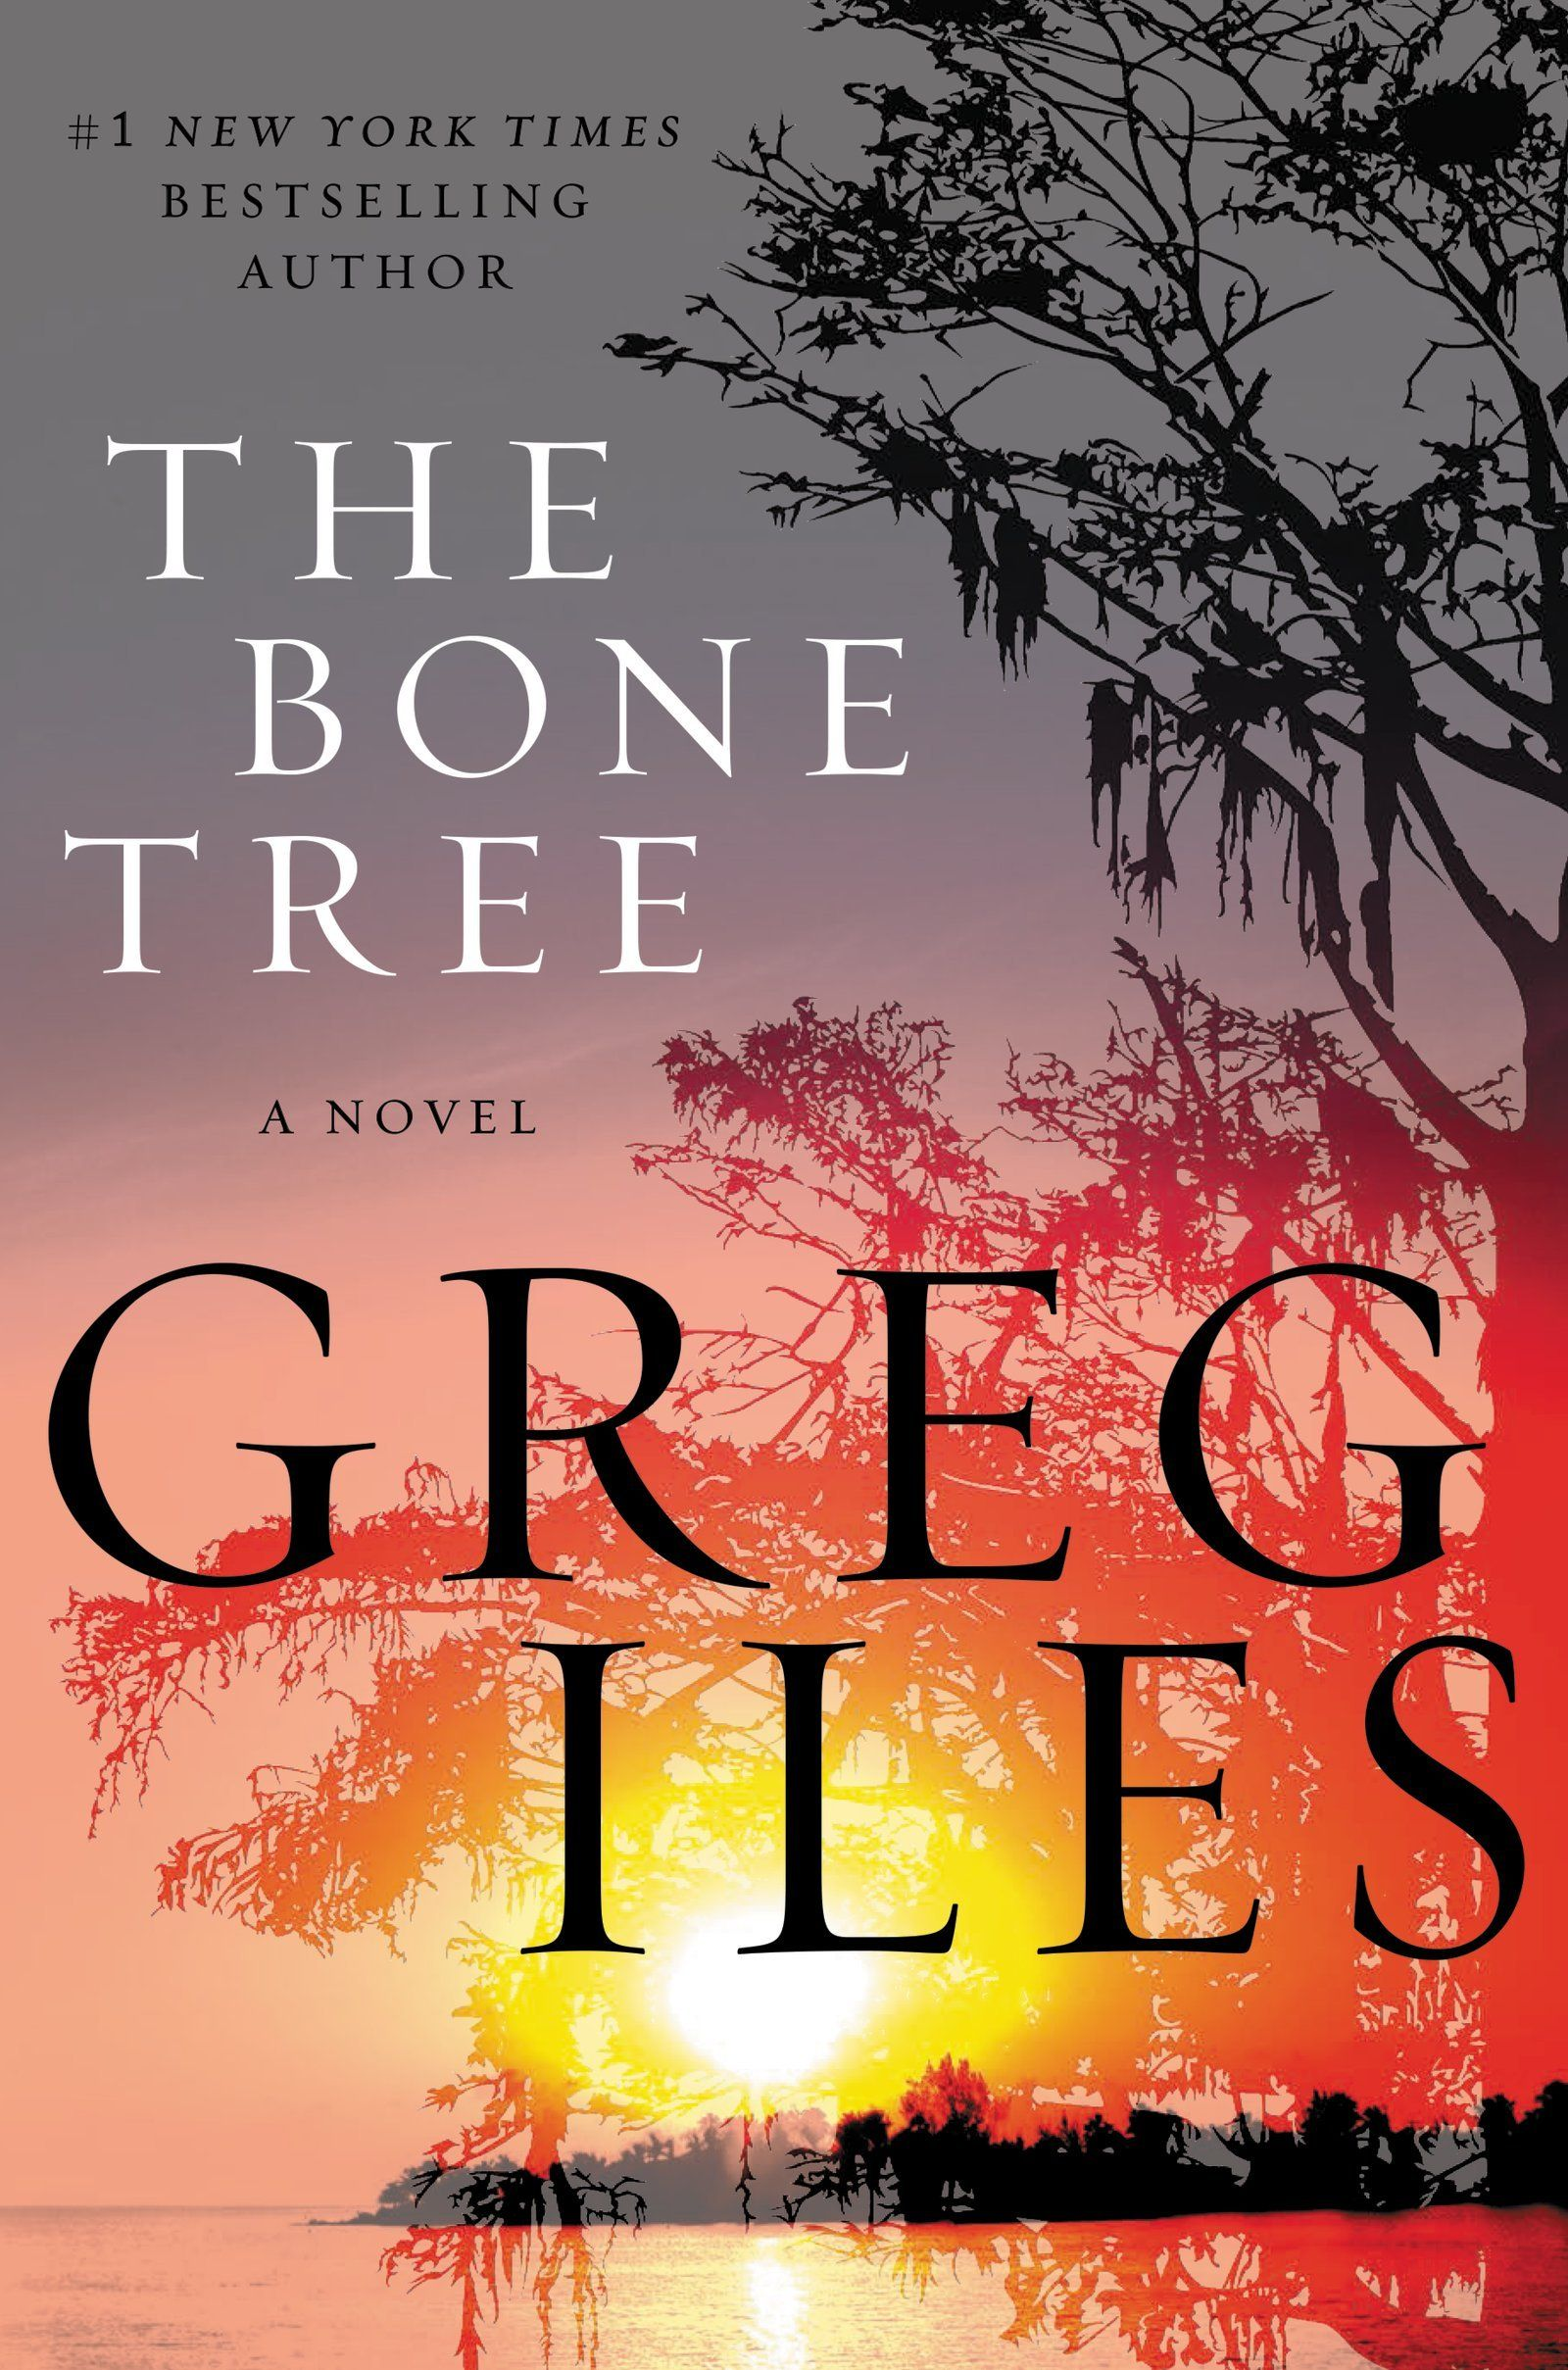 Greg iless latest book in his gothic trilogy featuring